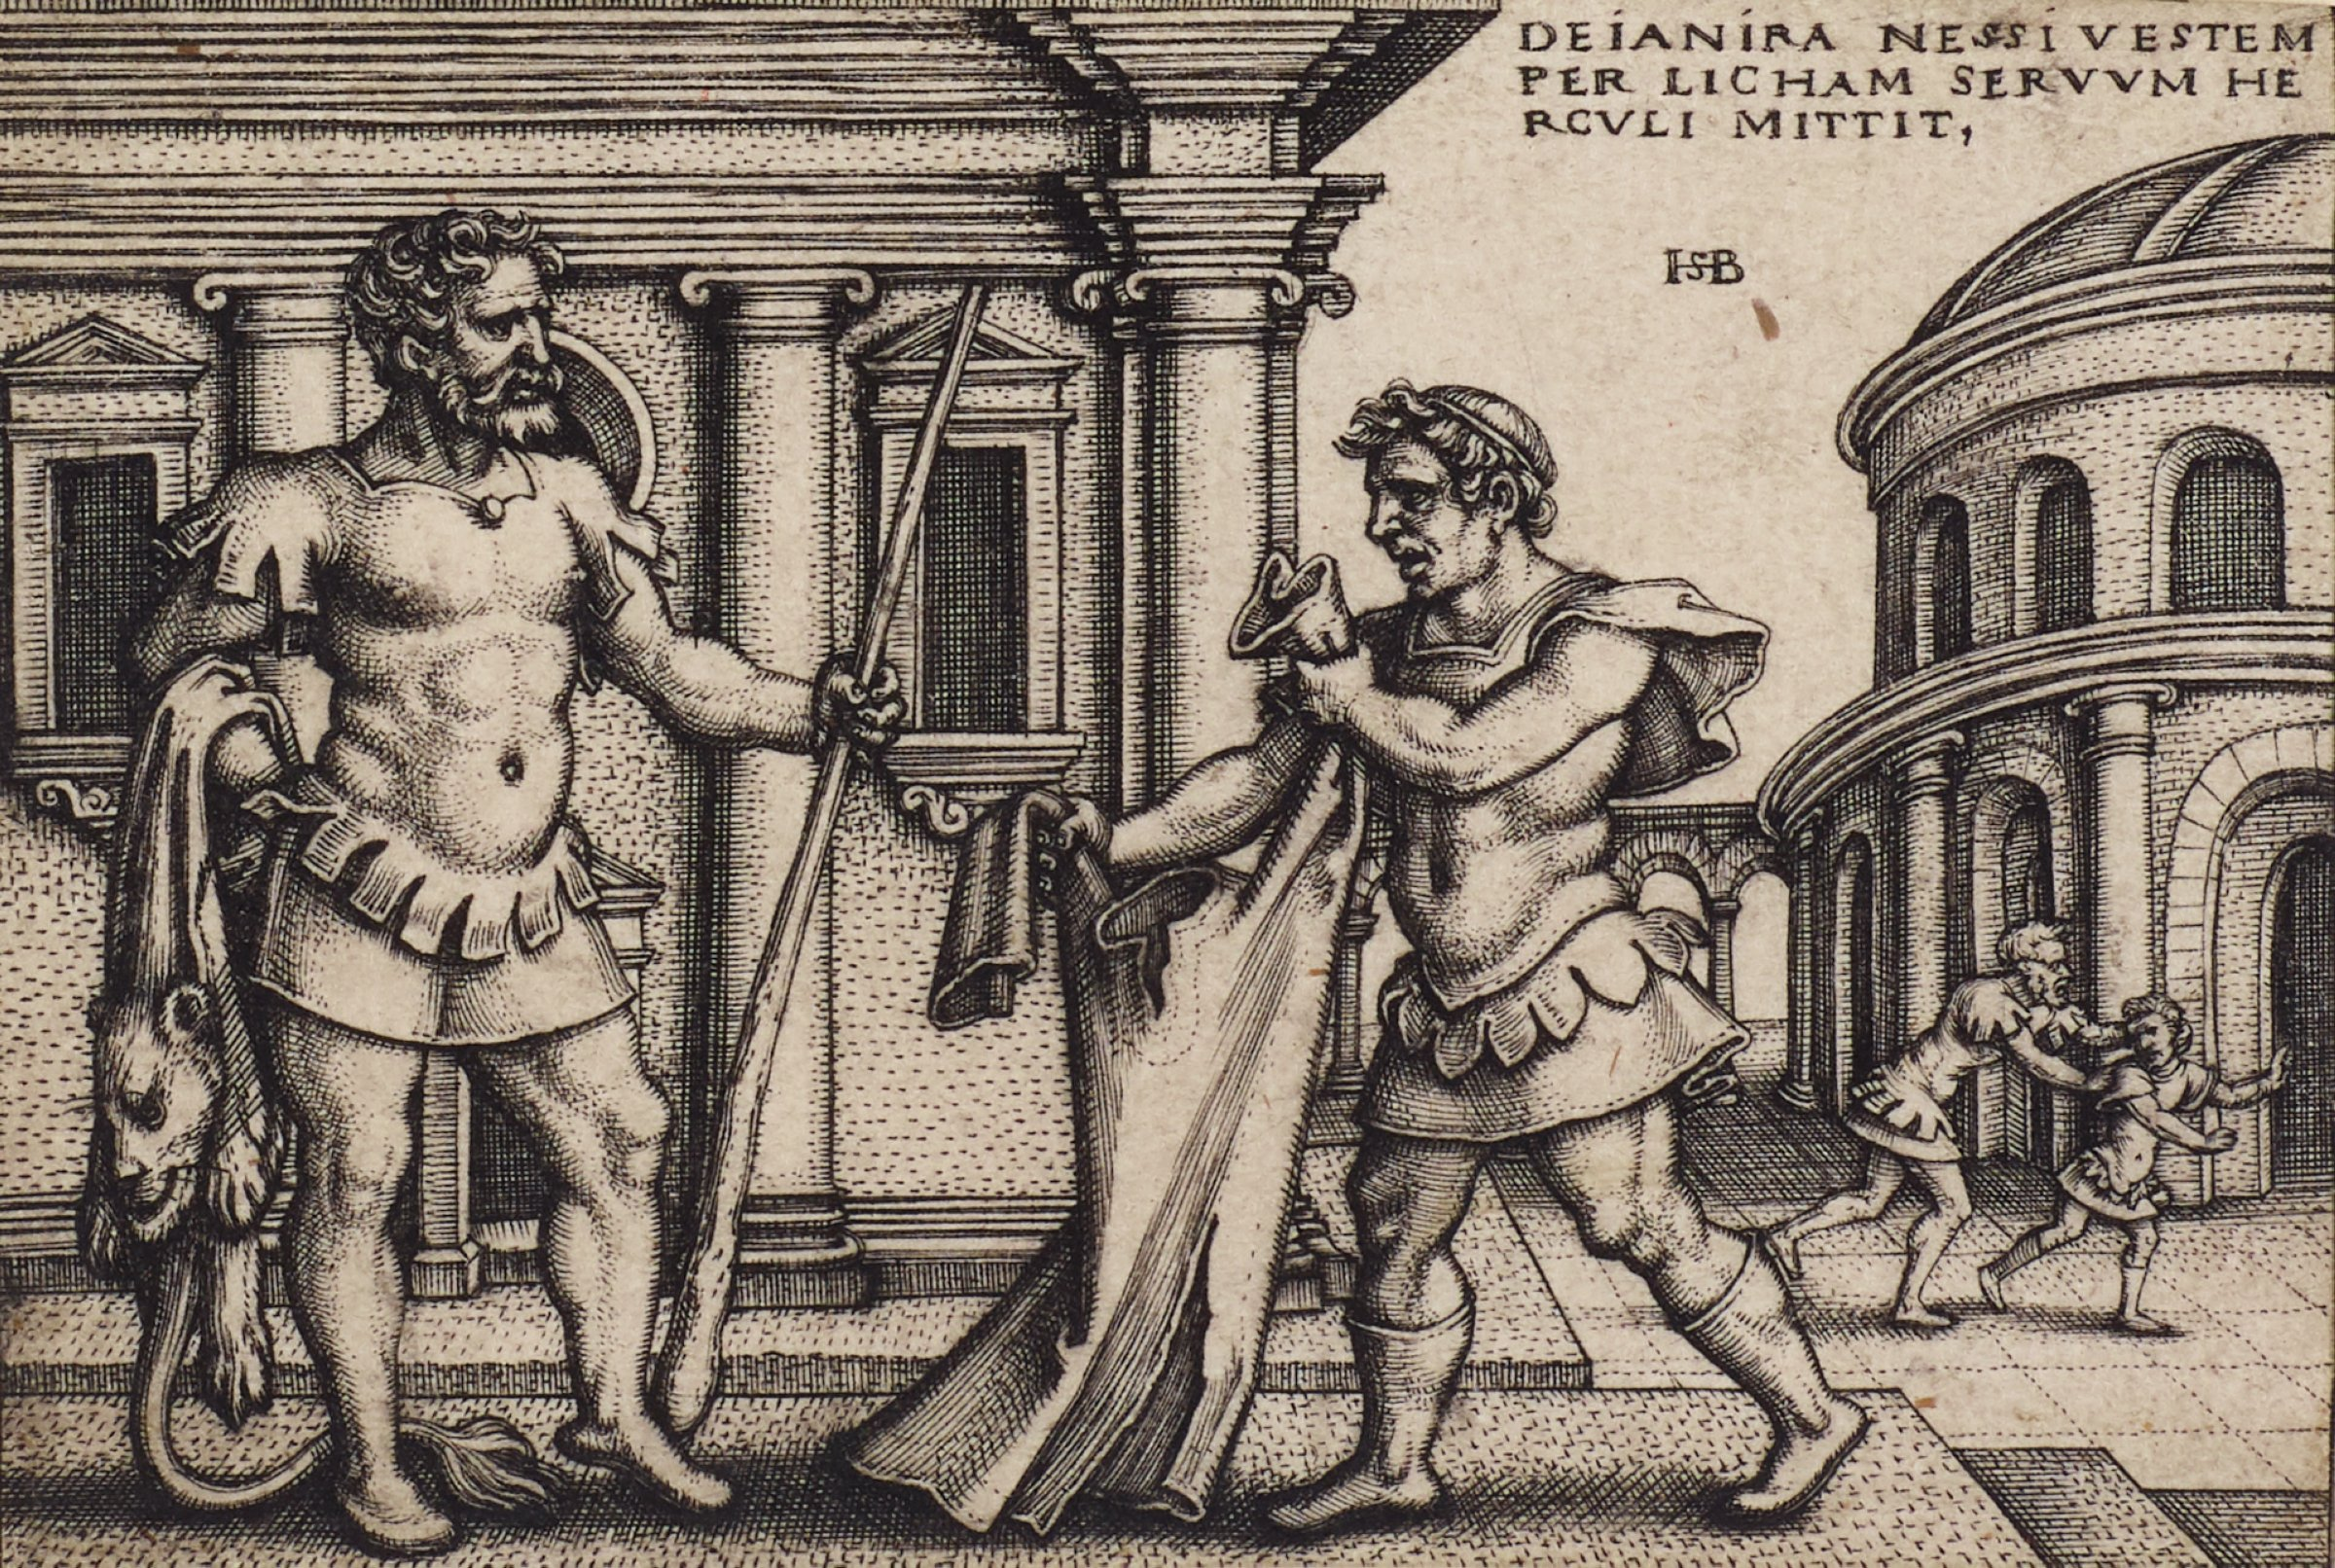 On the left, Hercules stands with a staff in his left hand and a lion's skin draped over the right arm. On the right, Lichas walks towards Hercules holding out Nessus's robe to him.